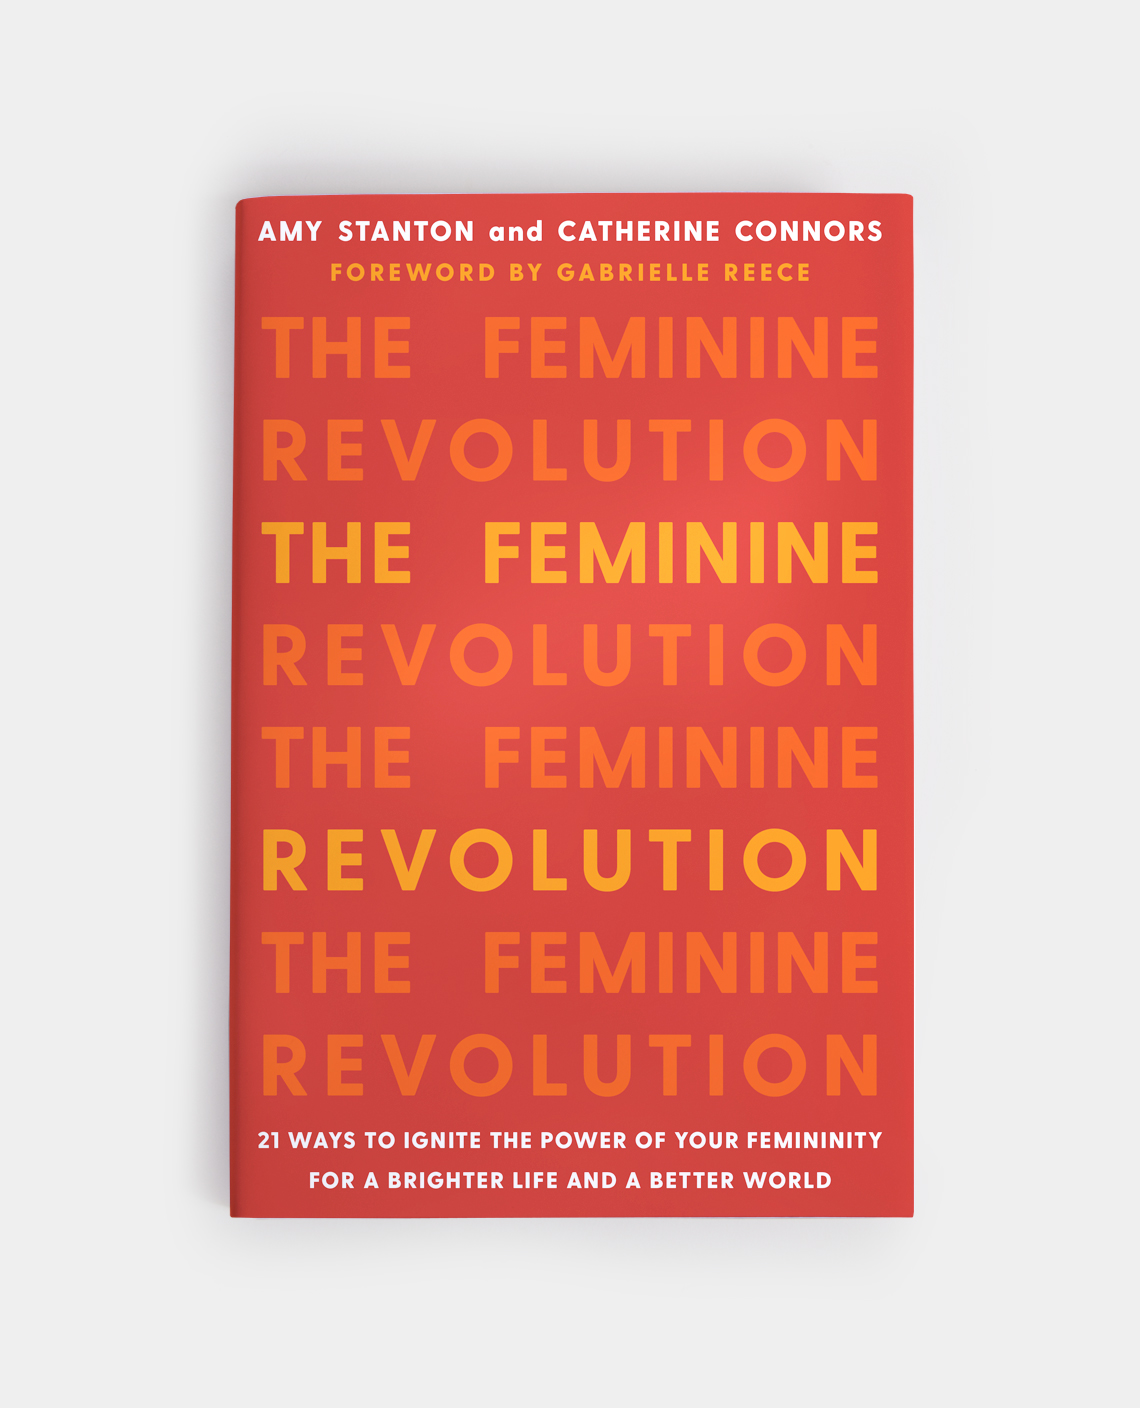 The Feminine Revolution - annadorfman.com